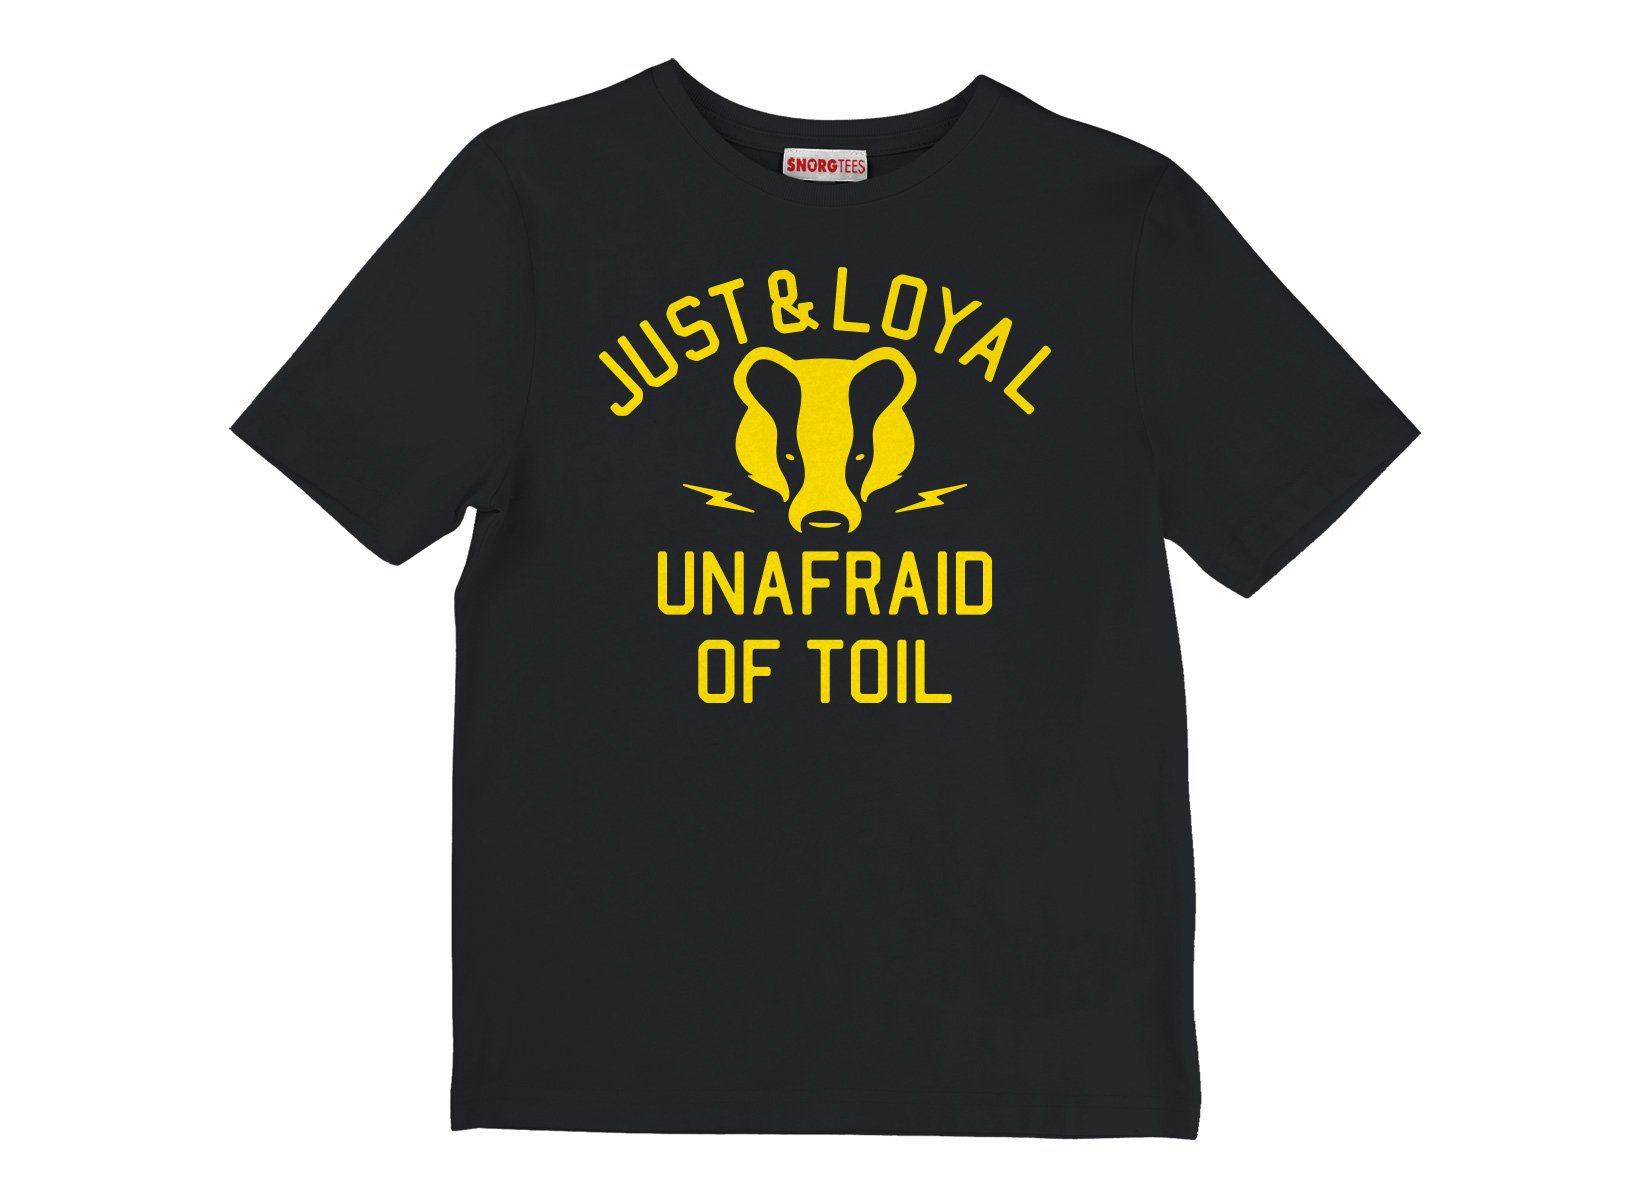 Just And Loyal, Unafraid Of Toil on Kids T-Shirt